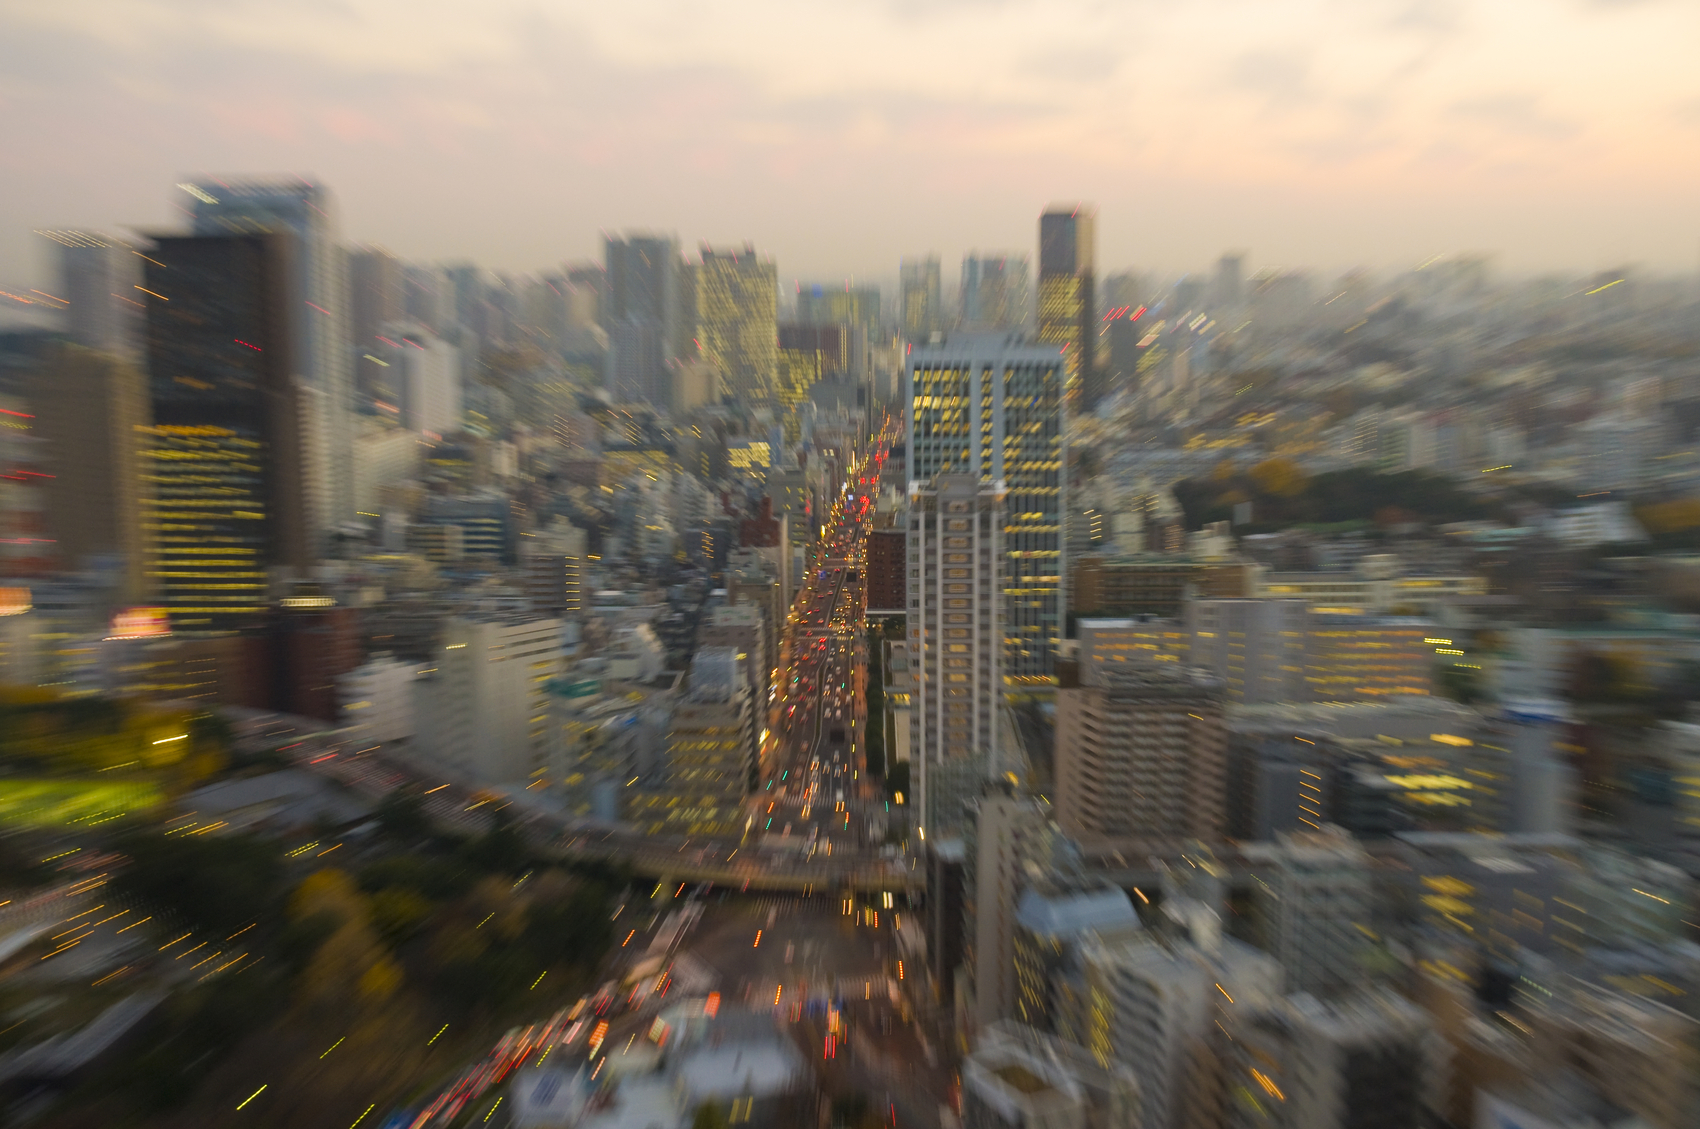 View from the Tokyo tower at sunset with zoom effect.Tokyo skyline.May be used to illustrate an earthquake.Please check more images here: